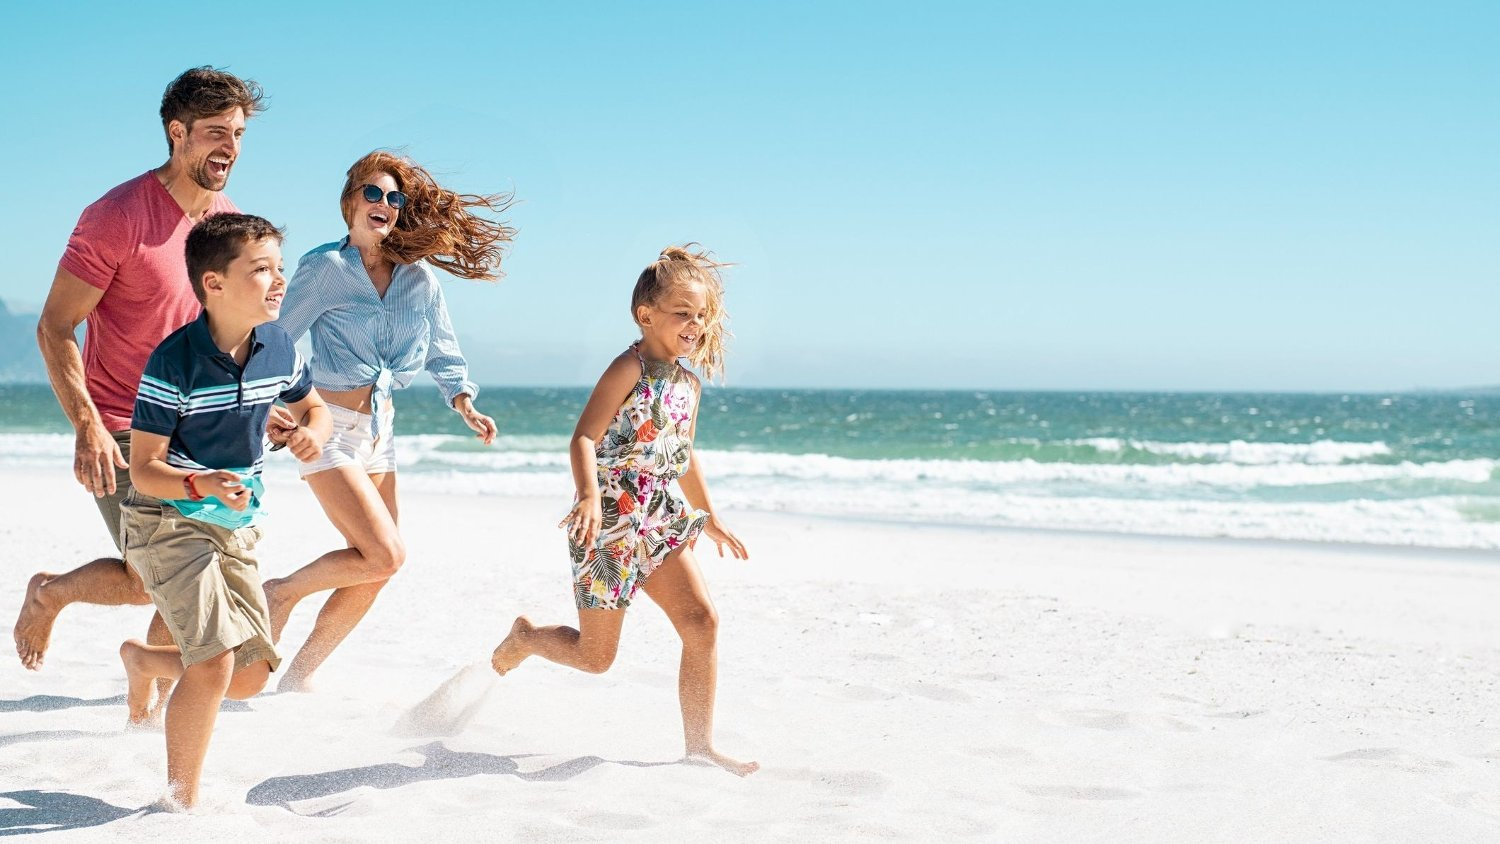 Happy family running on beach Cheerful young family running on the beach with copy space. Happy mother and smiling father with two children, son and daughter, having fun during summer holiday. Playful casual family enjoying playing at beach during vacaton.